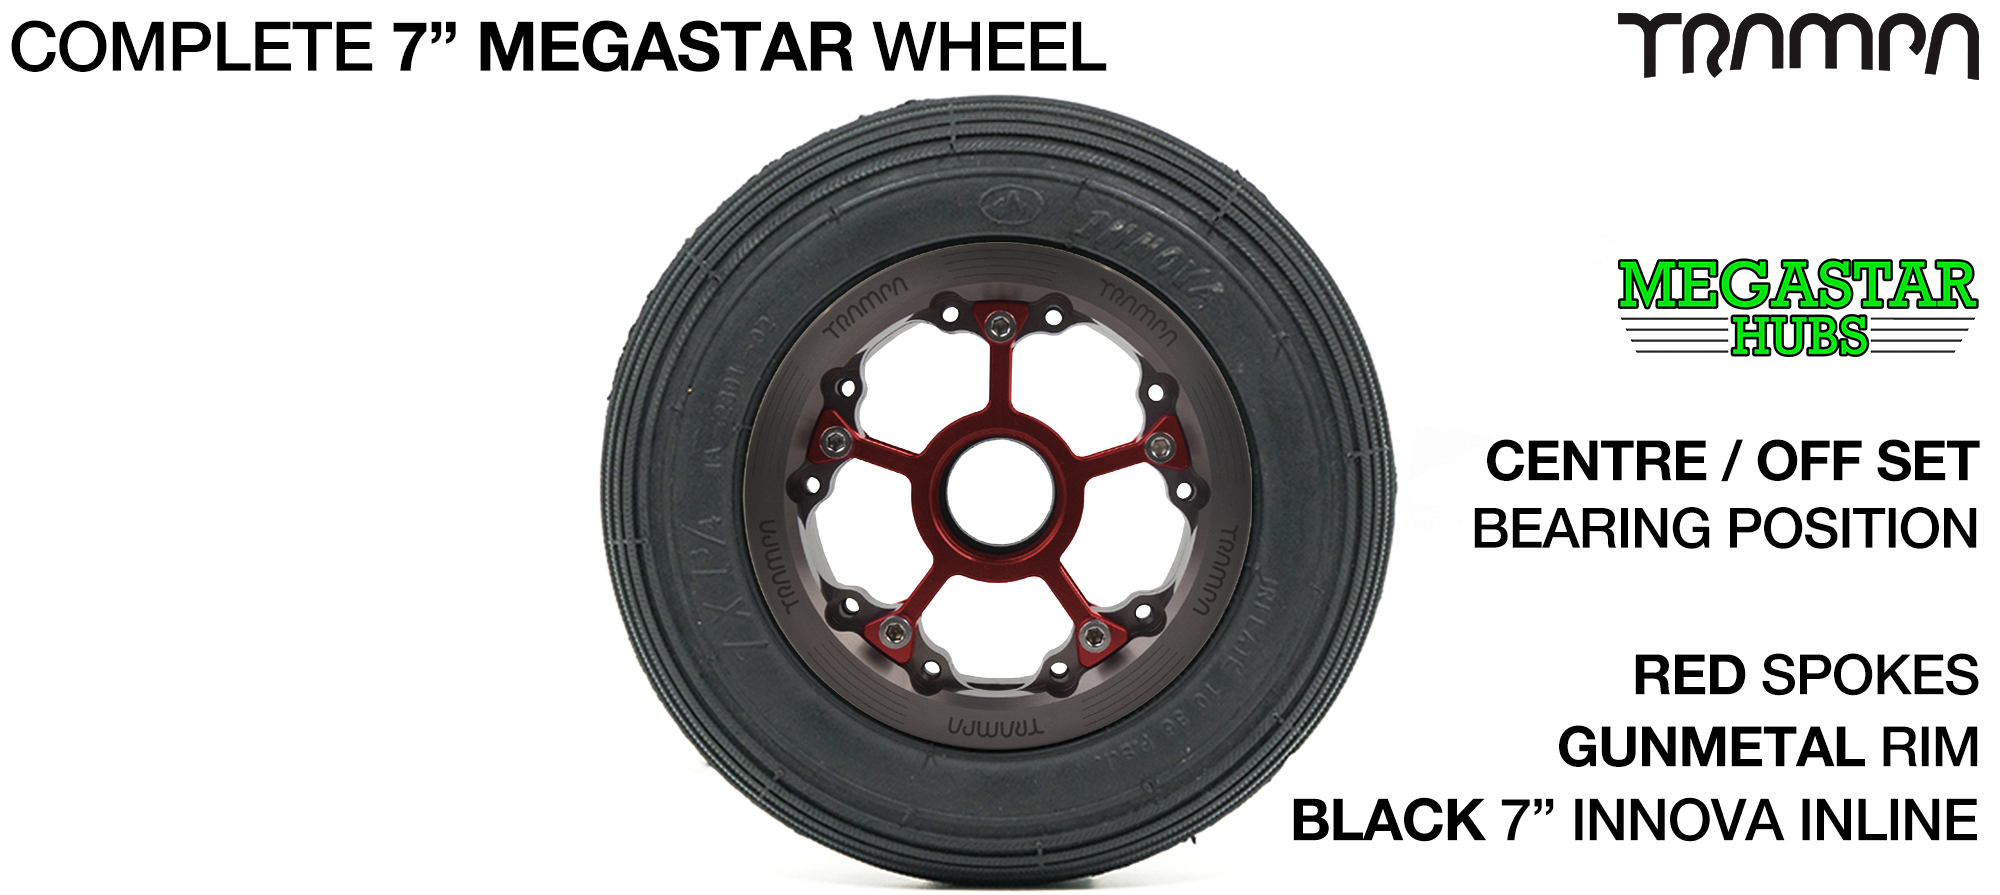 SILVER MEGASTAR Rims with SILVER Spokes & 7 Inch Tyres